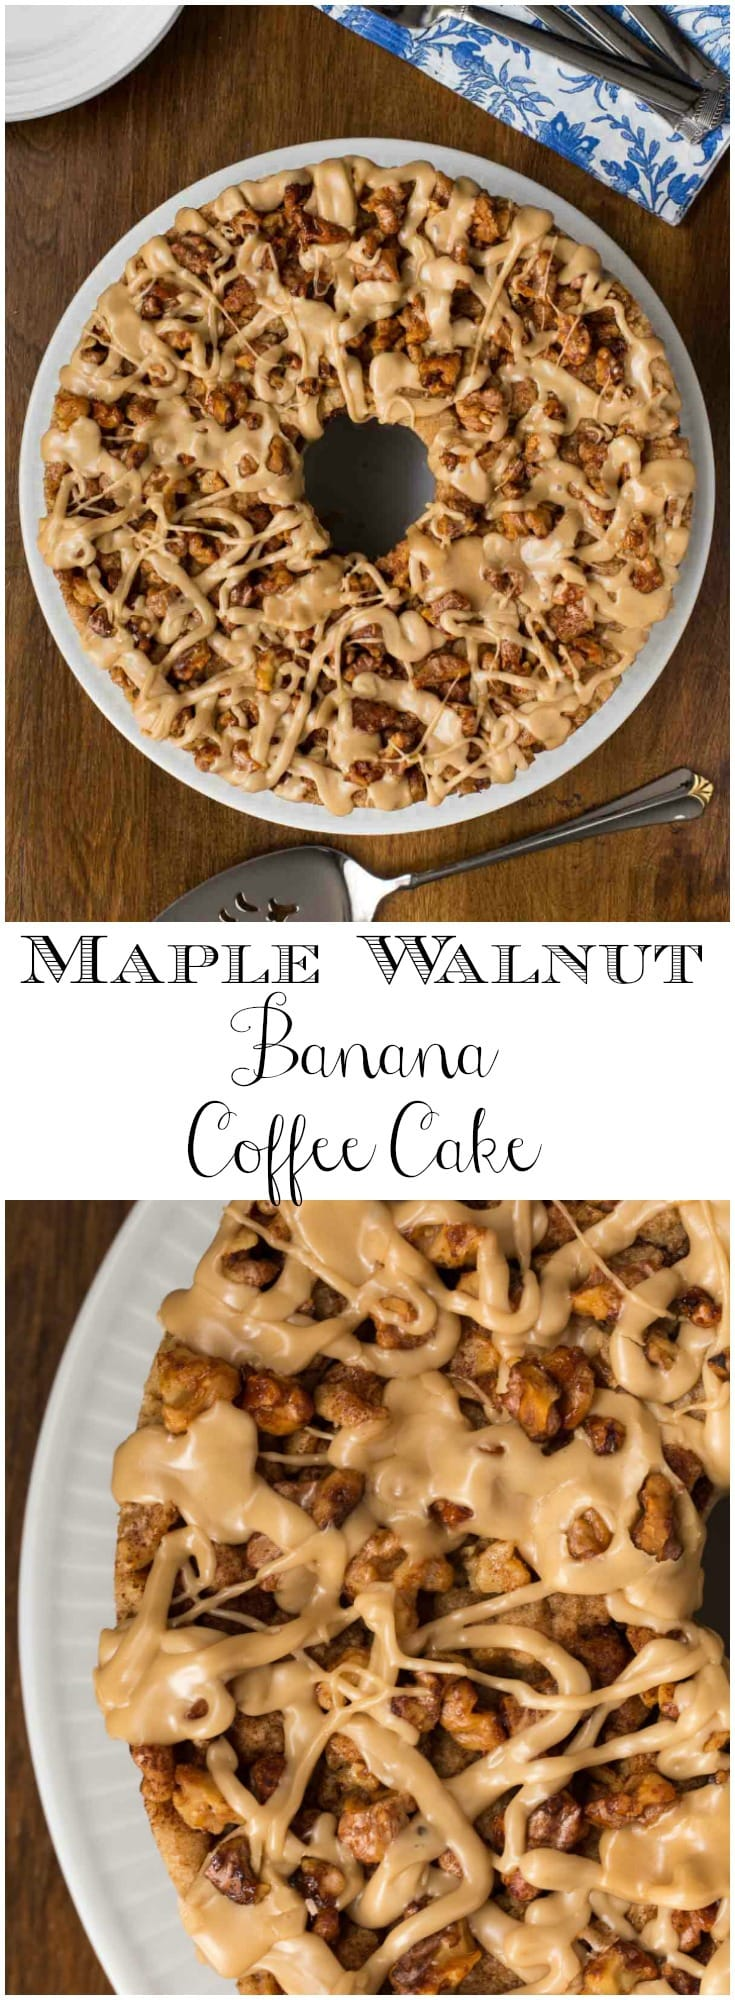 This Maple Walnut Banana Coffee Cake will be the shining star of any breakfast or brunch buffet and comes together easily, without pulling out the mixer!